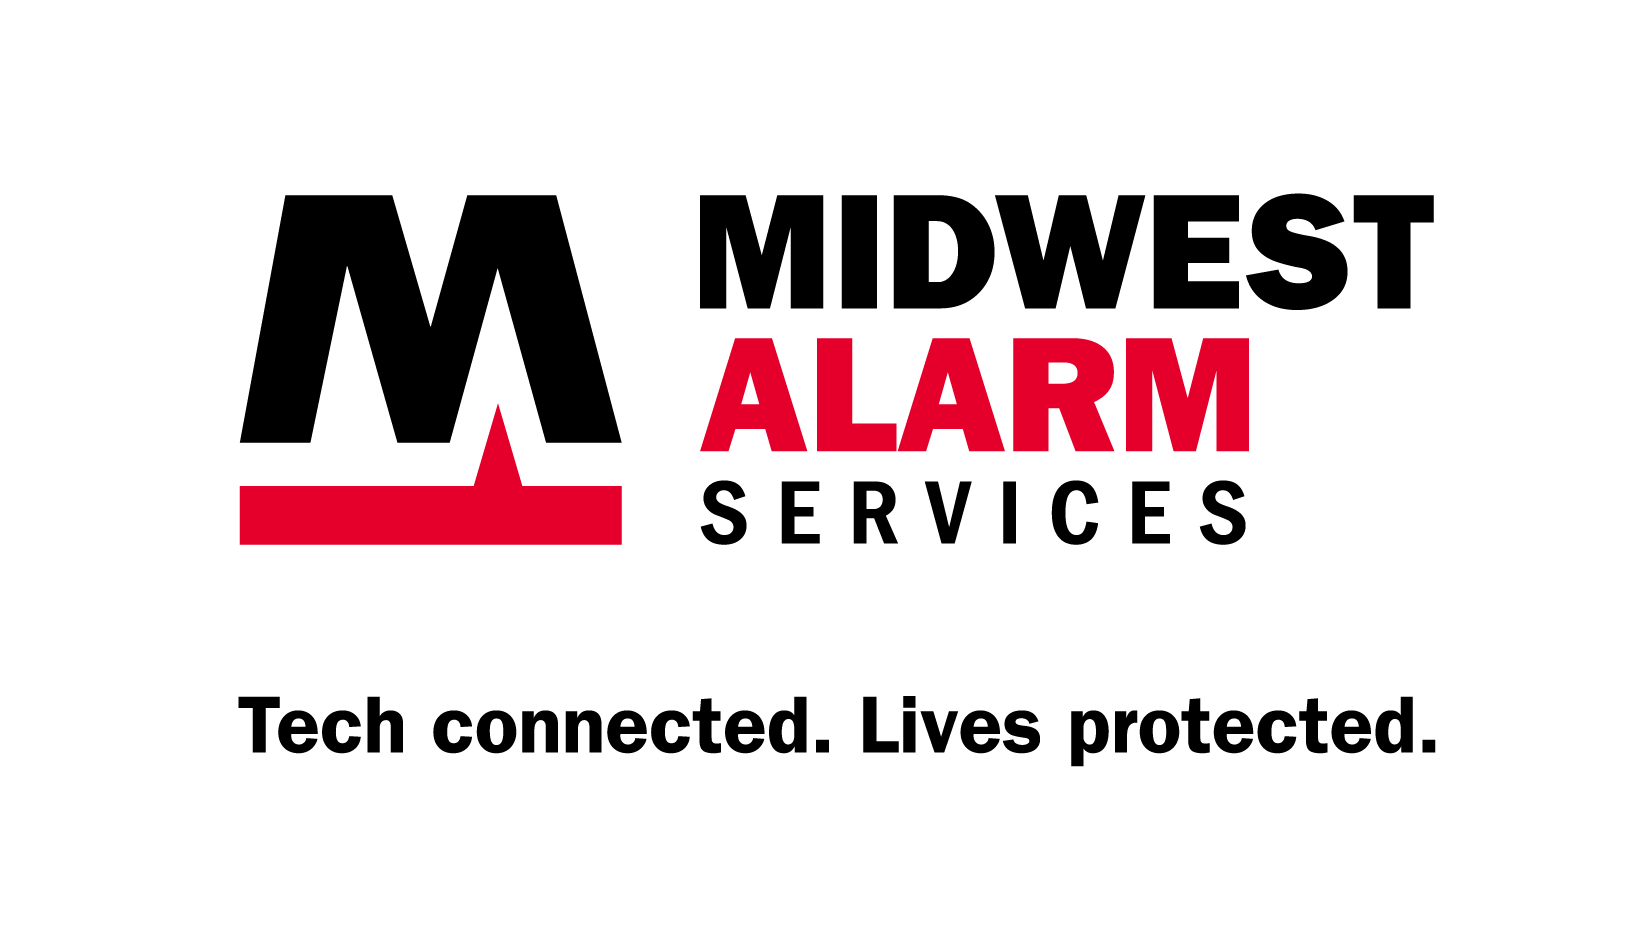 Midwest Alarm Services Reveals New Branding